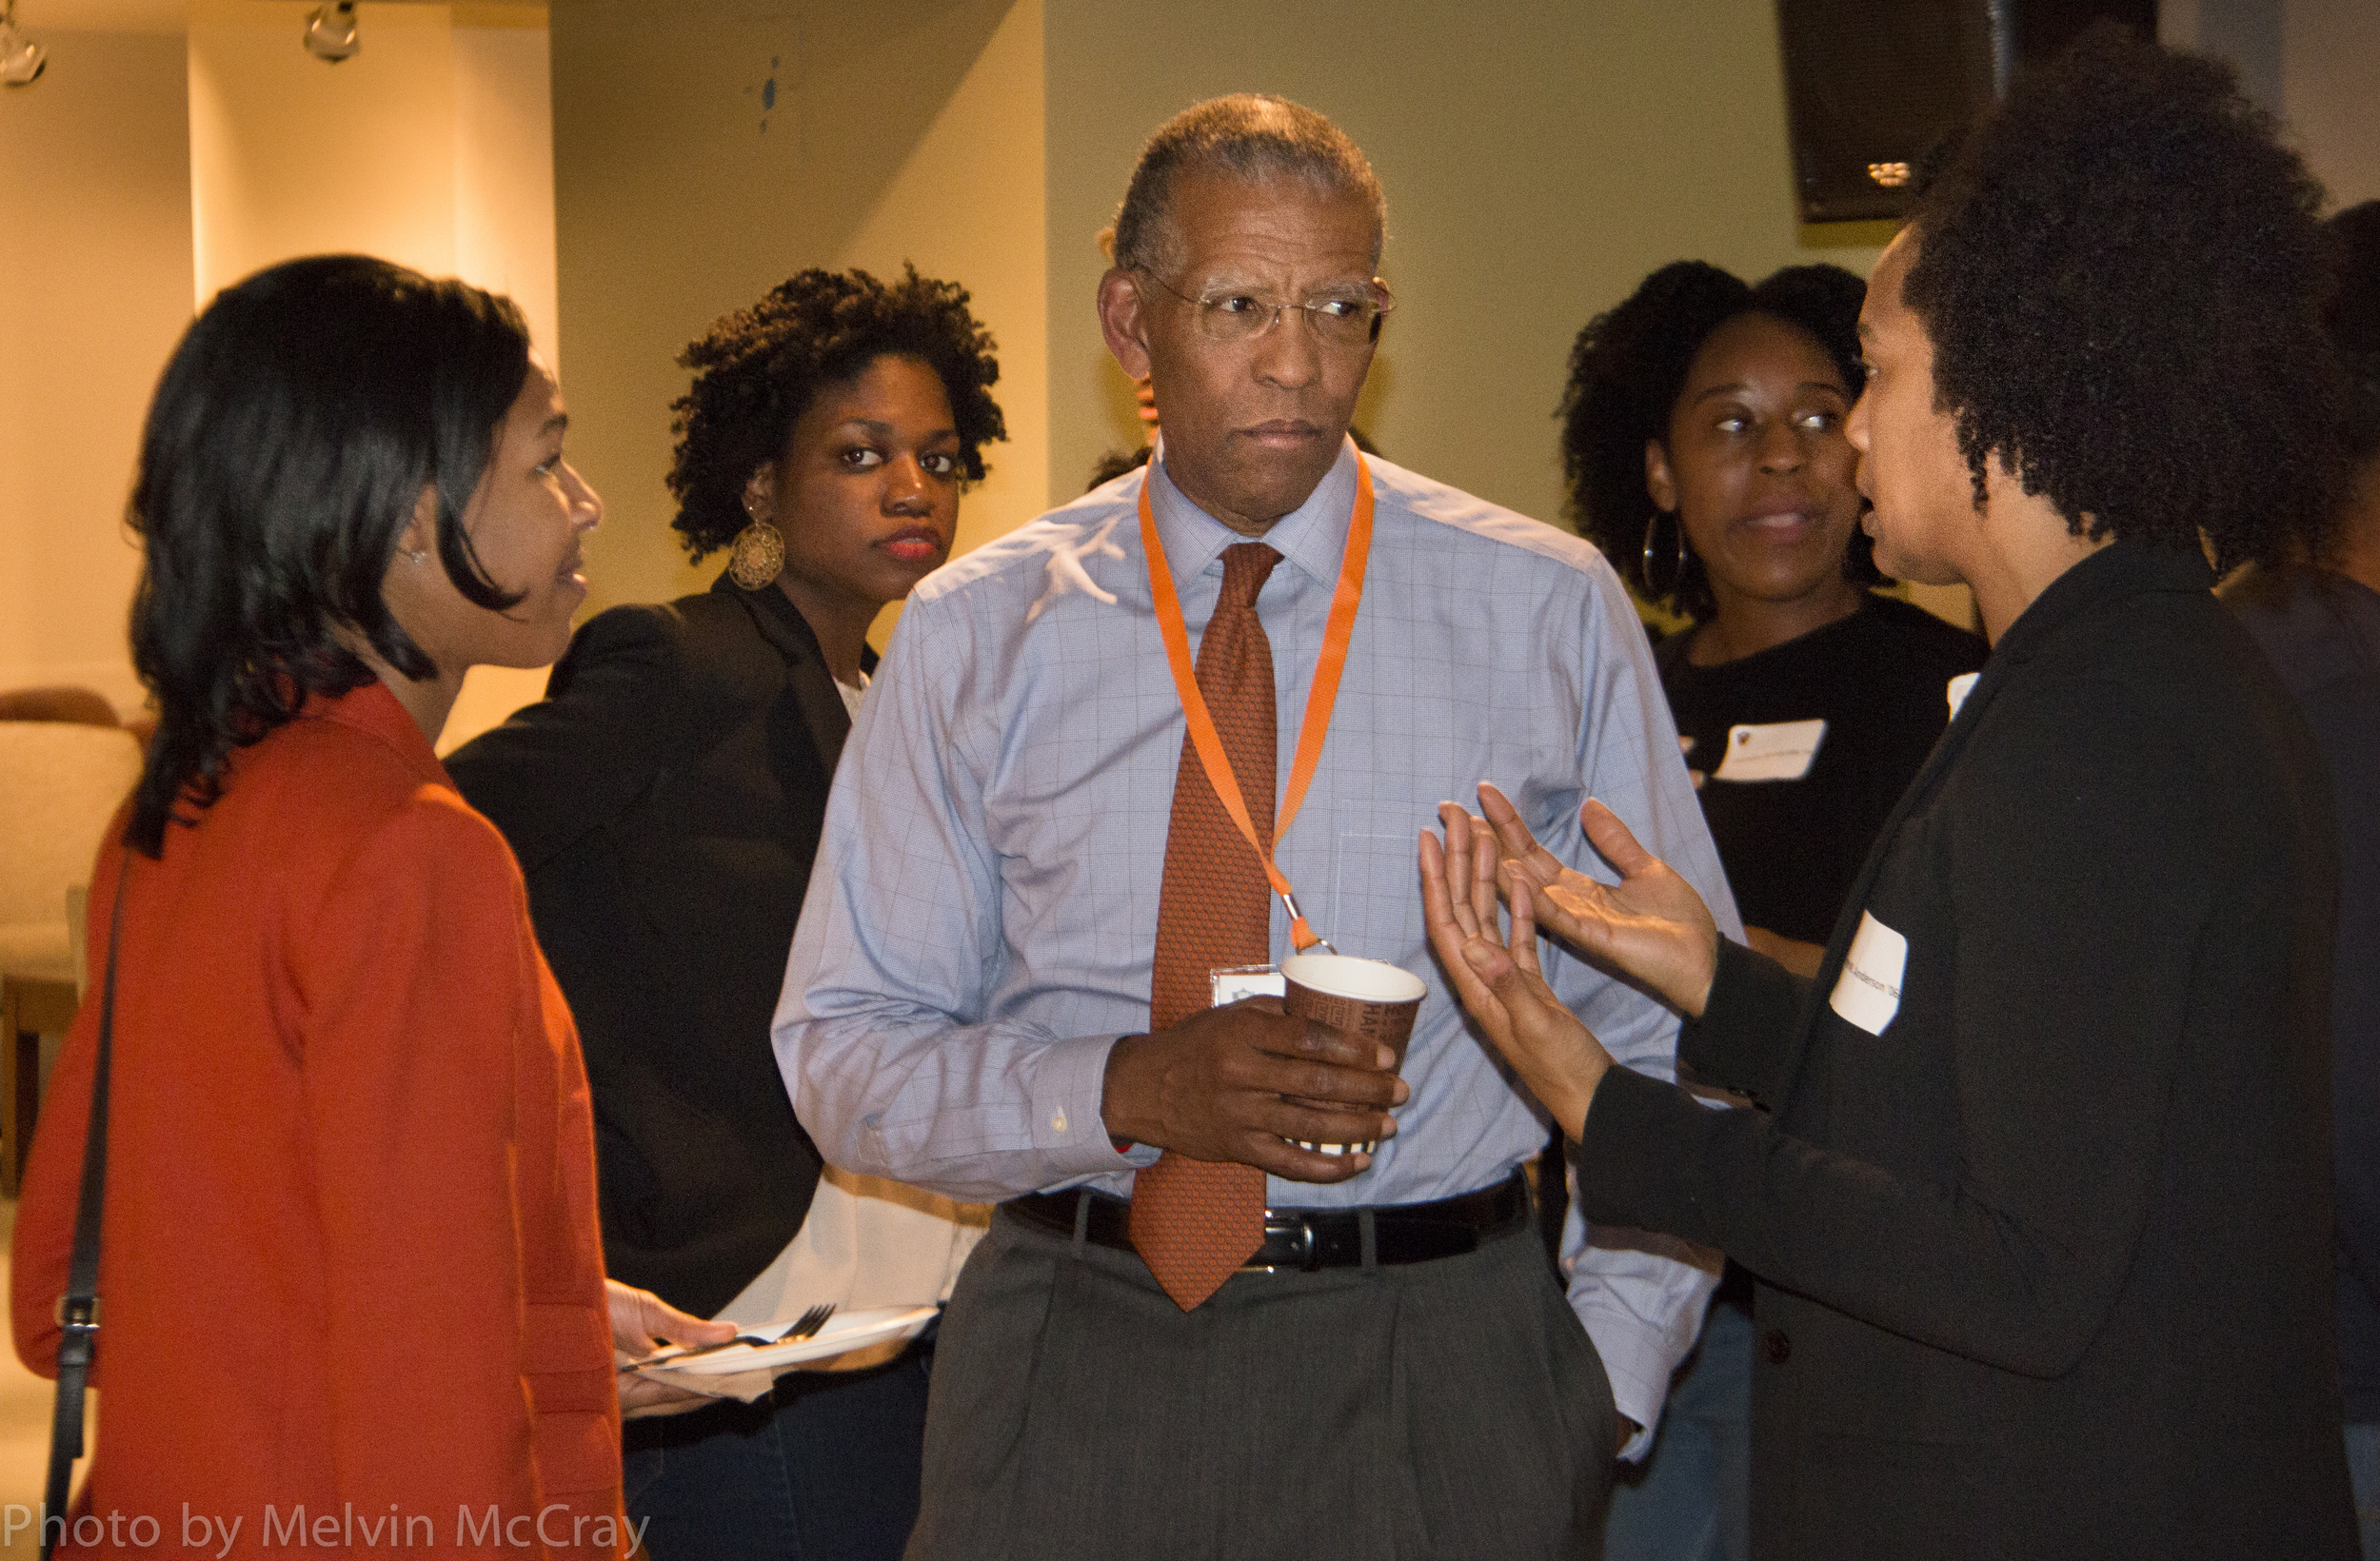 Princeton Alumni and undergraduates meet 3 photo by Melvin McCay-7679.jpg